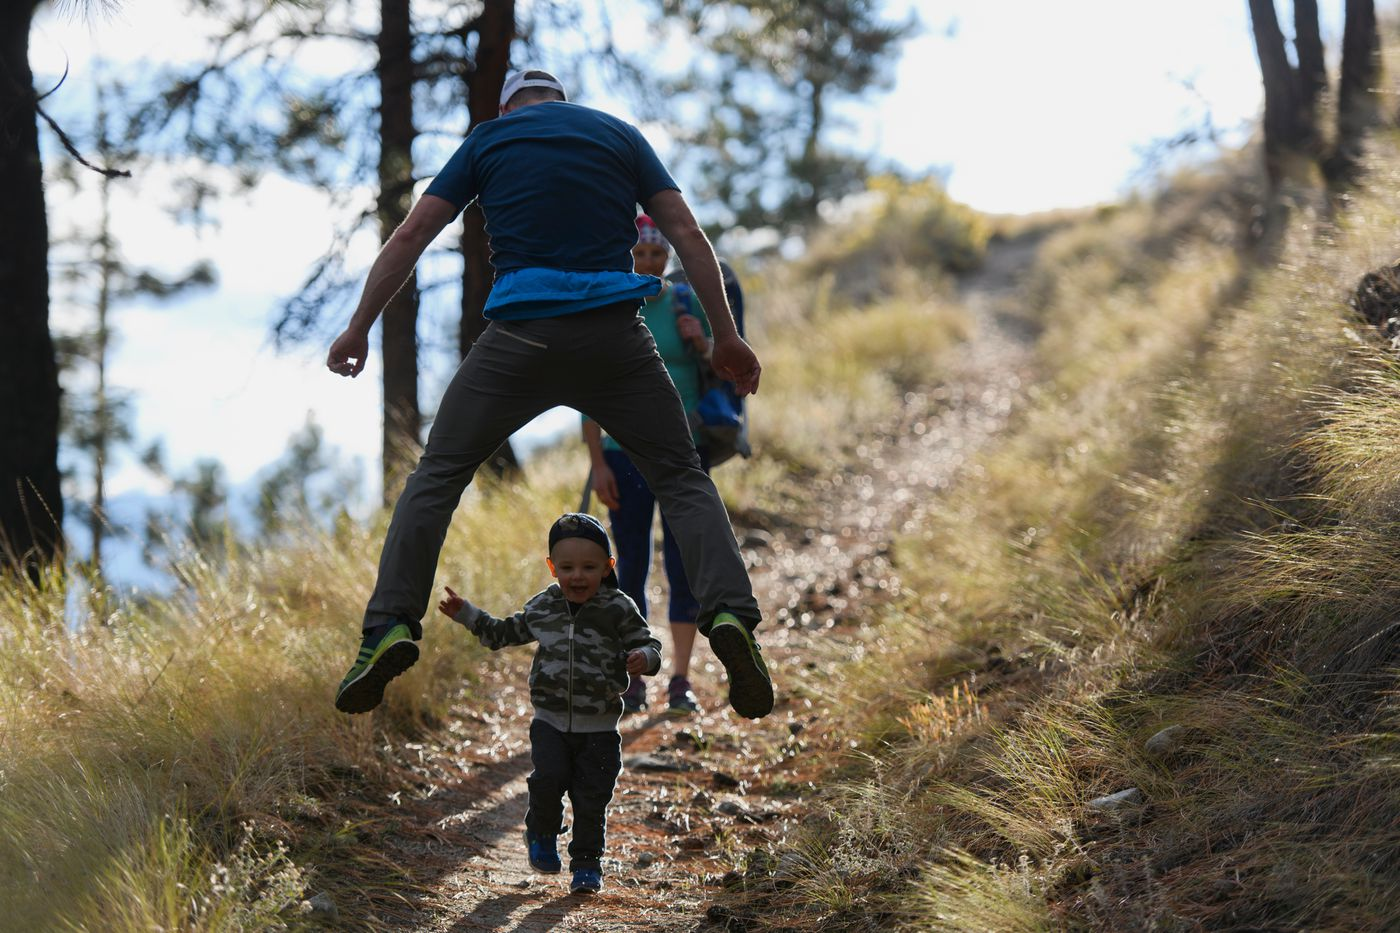 Jeff Ellis leaps over Breck while hiking with Kikkan Randall on the trails near their Penticton, B.C. home on Oct. 9. (Marc Lester / ADN)